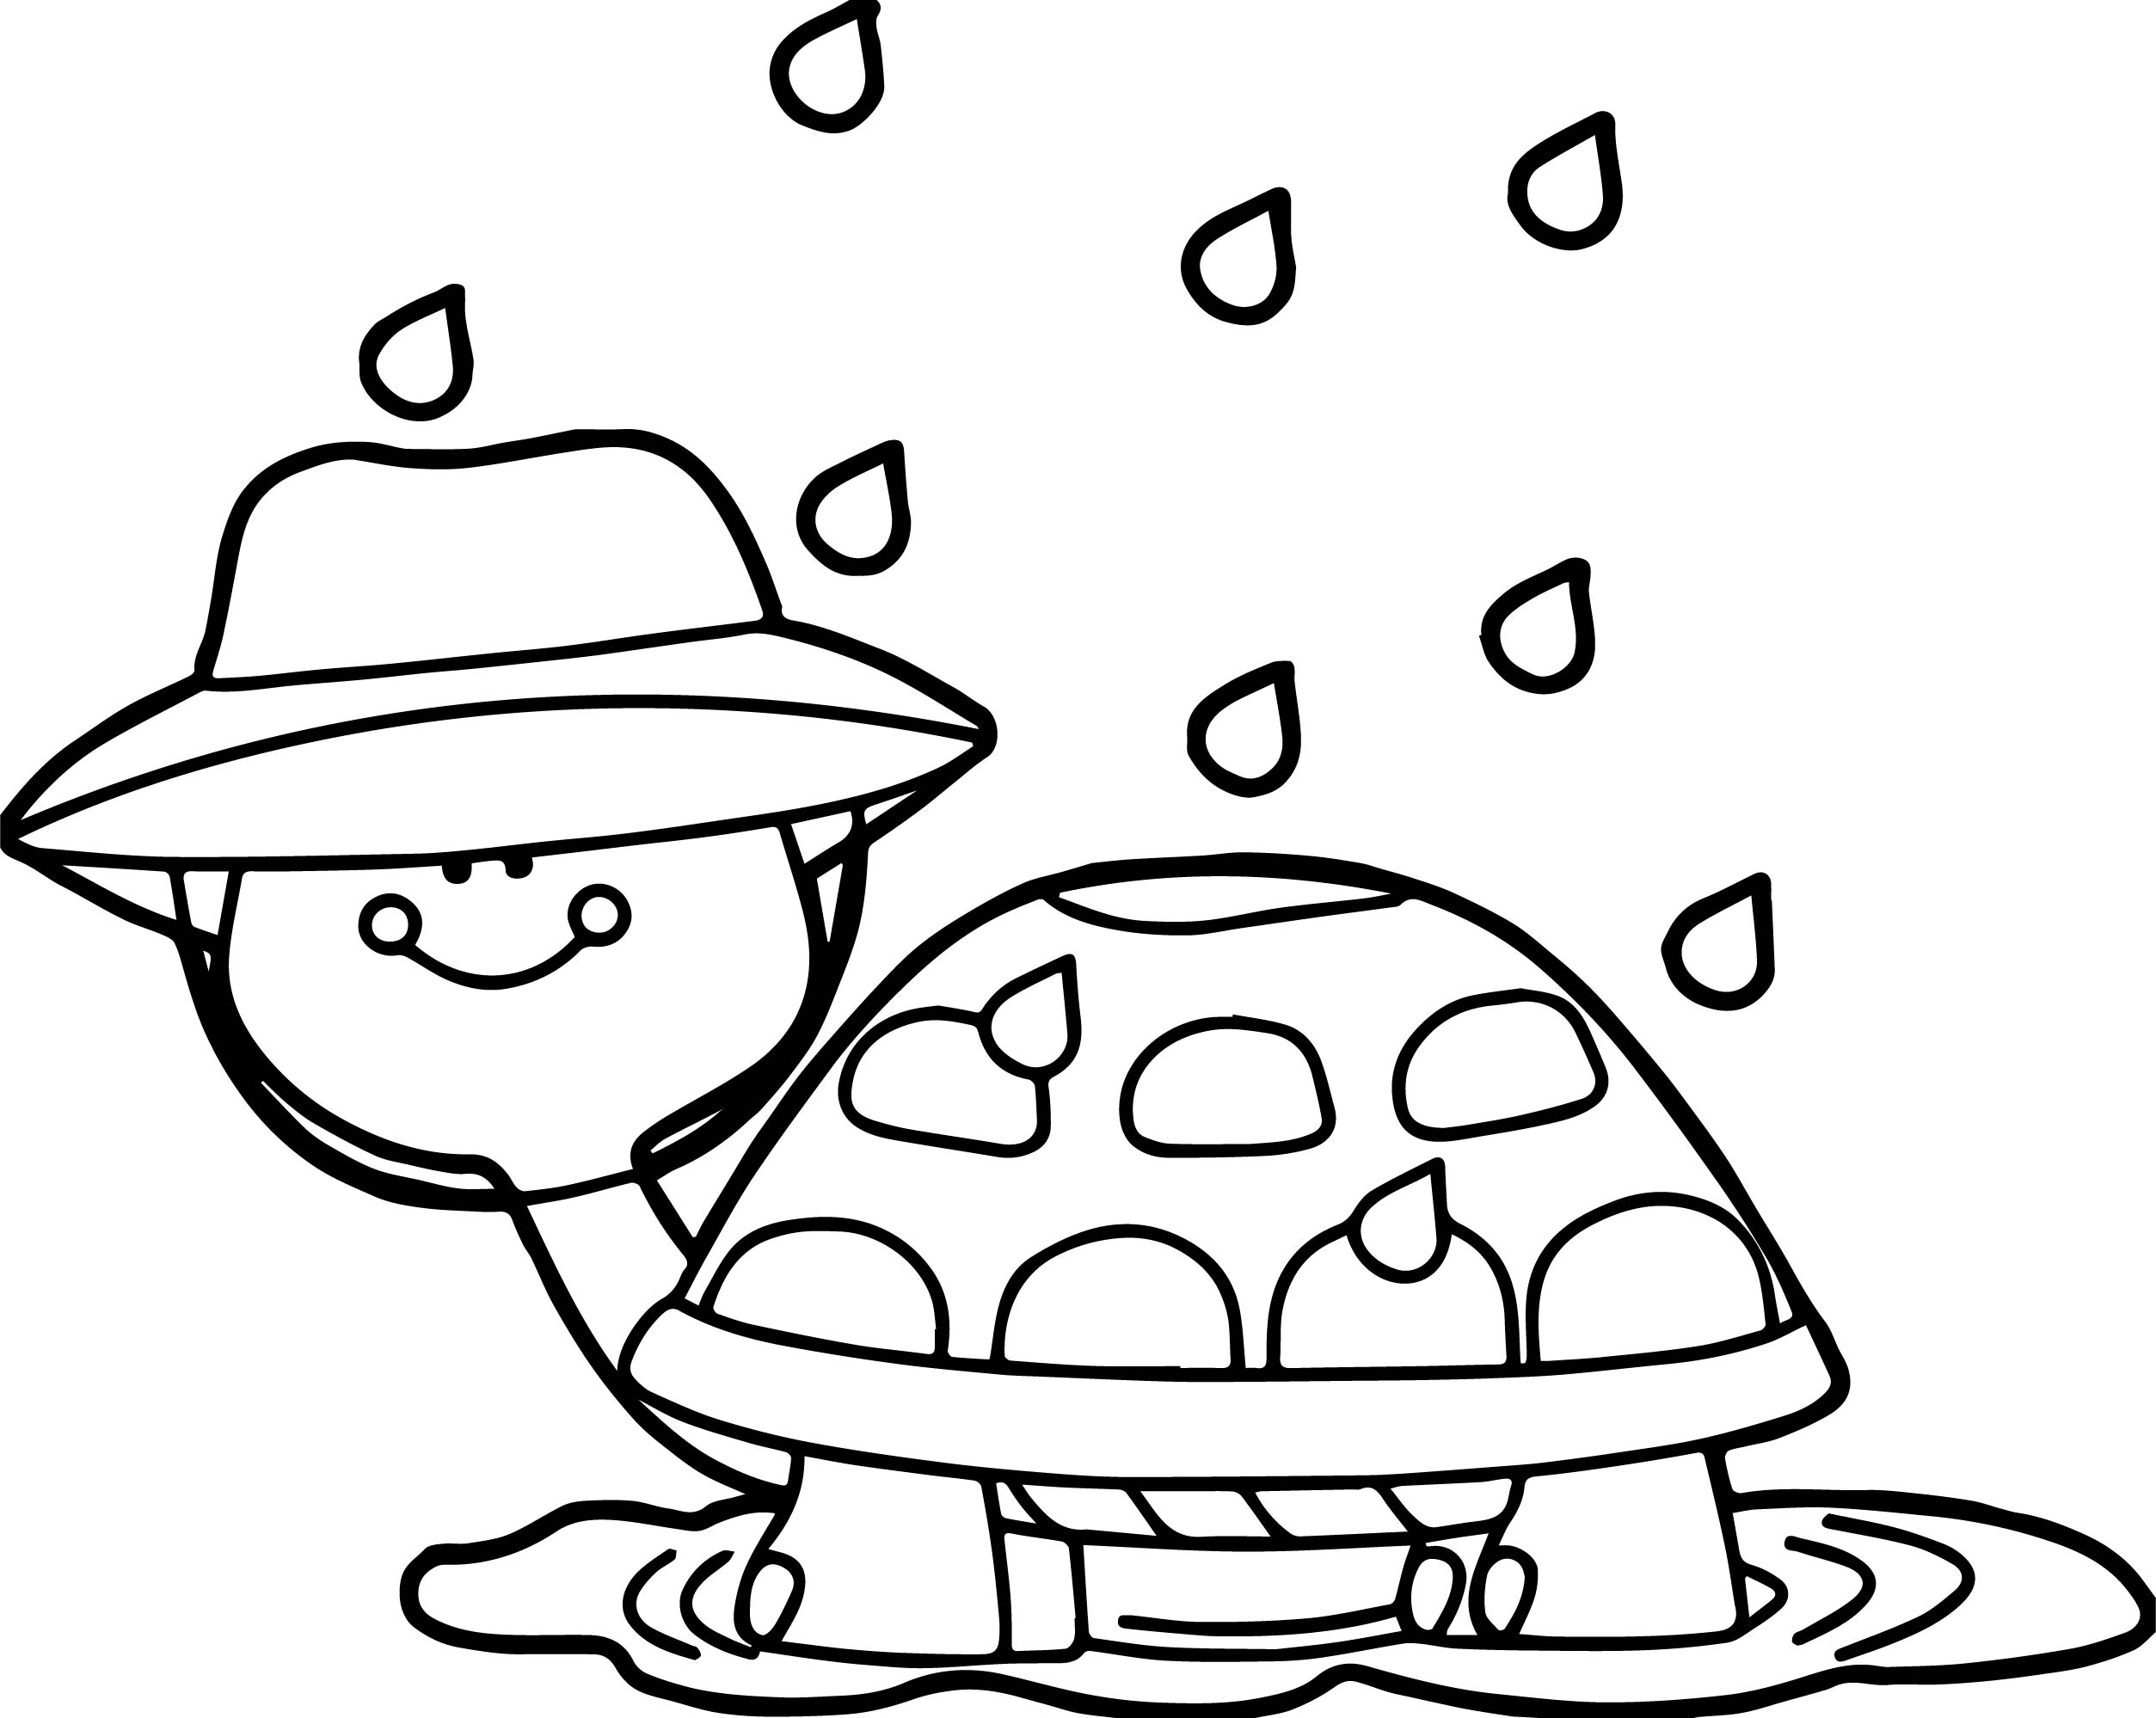 2507x1998 April Shower Turtle Coloring Page Wecoloringpage